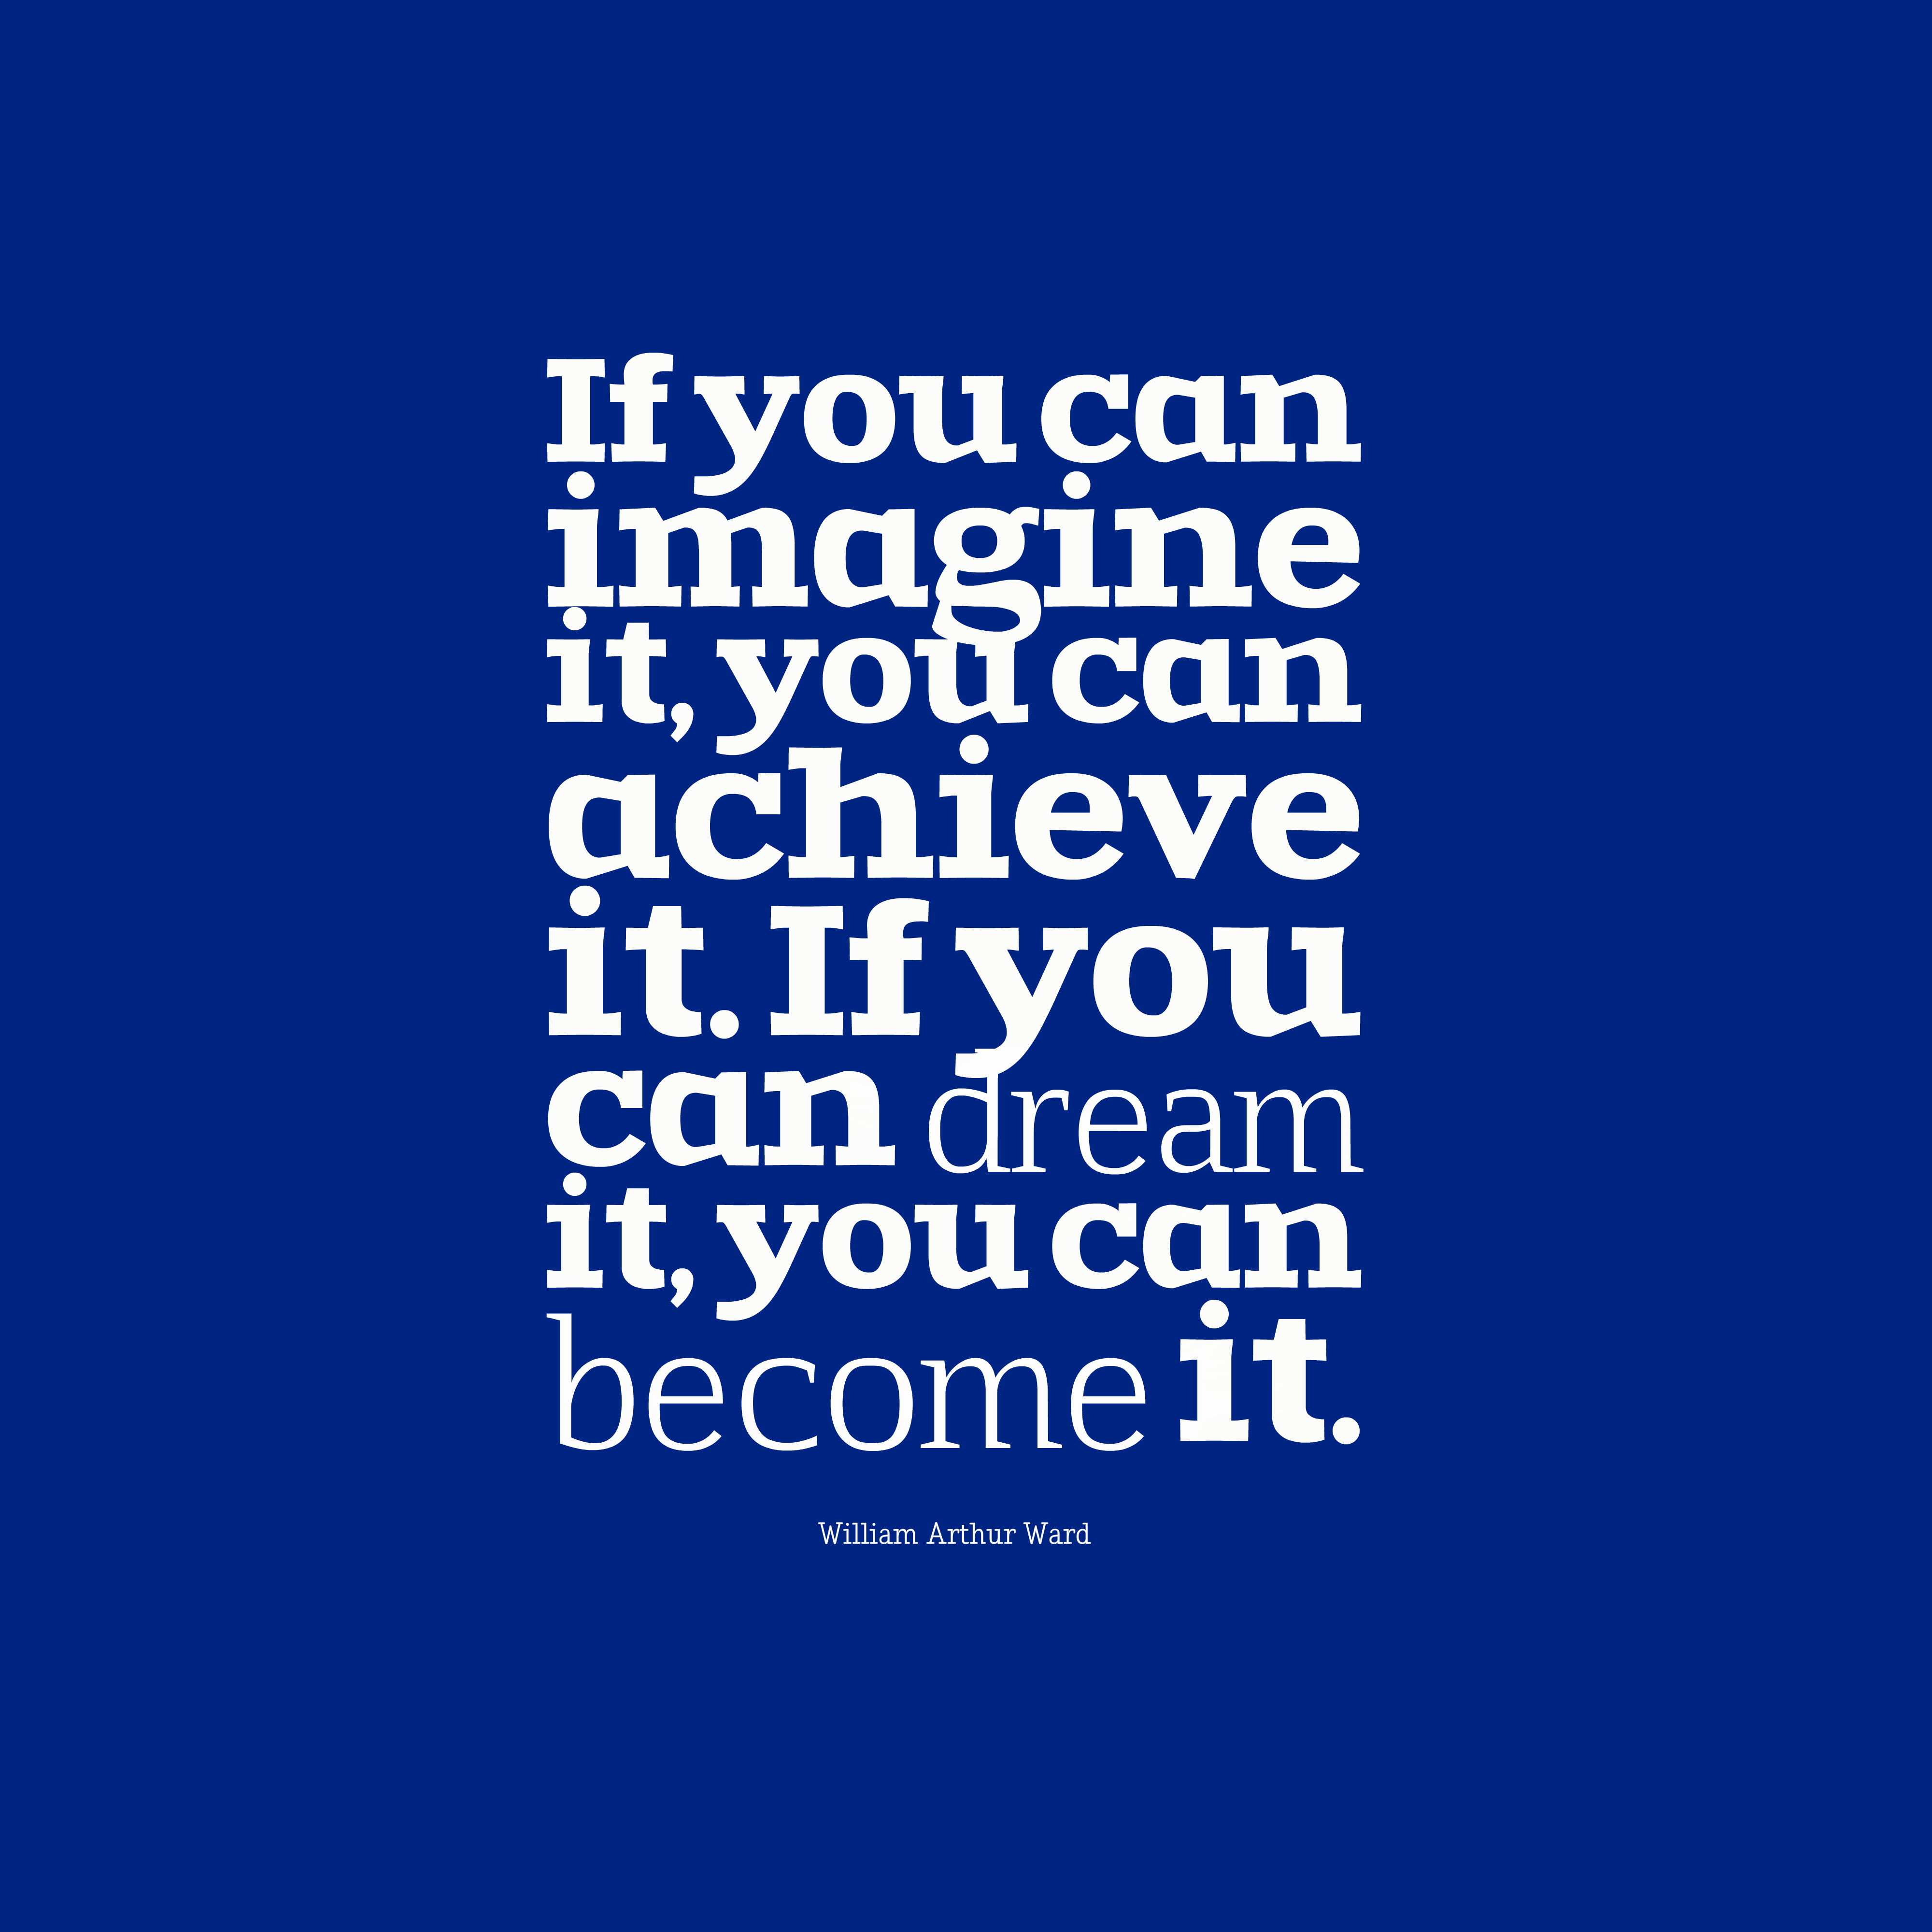 Quotes image of If you can imagine it, you can achieve it. If you can dream it, you can become it.